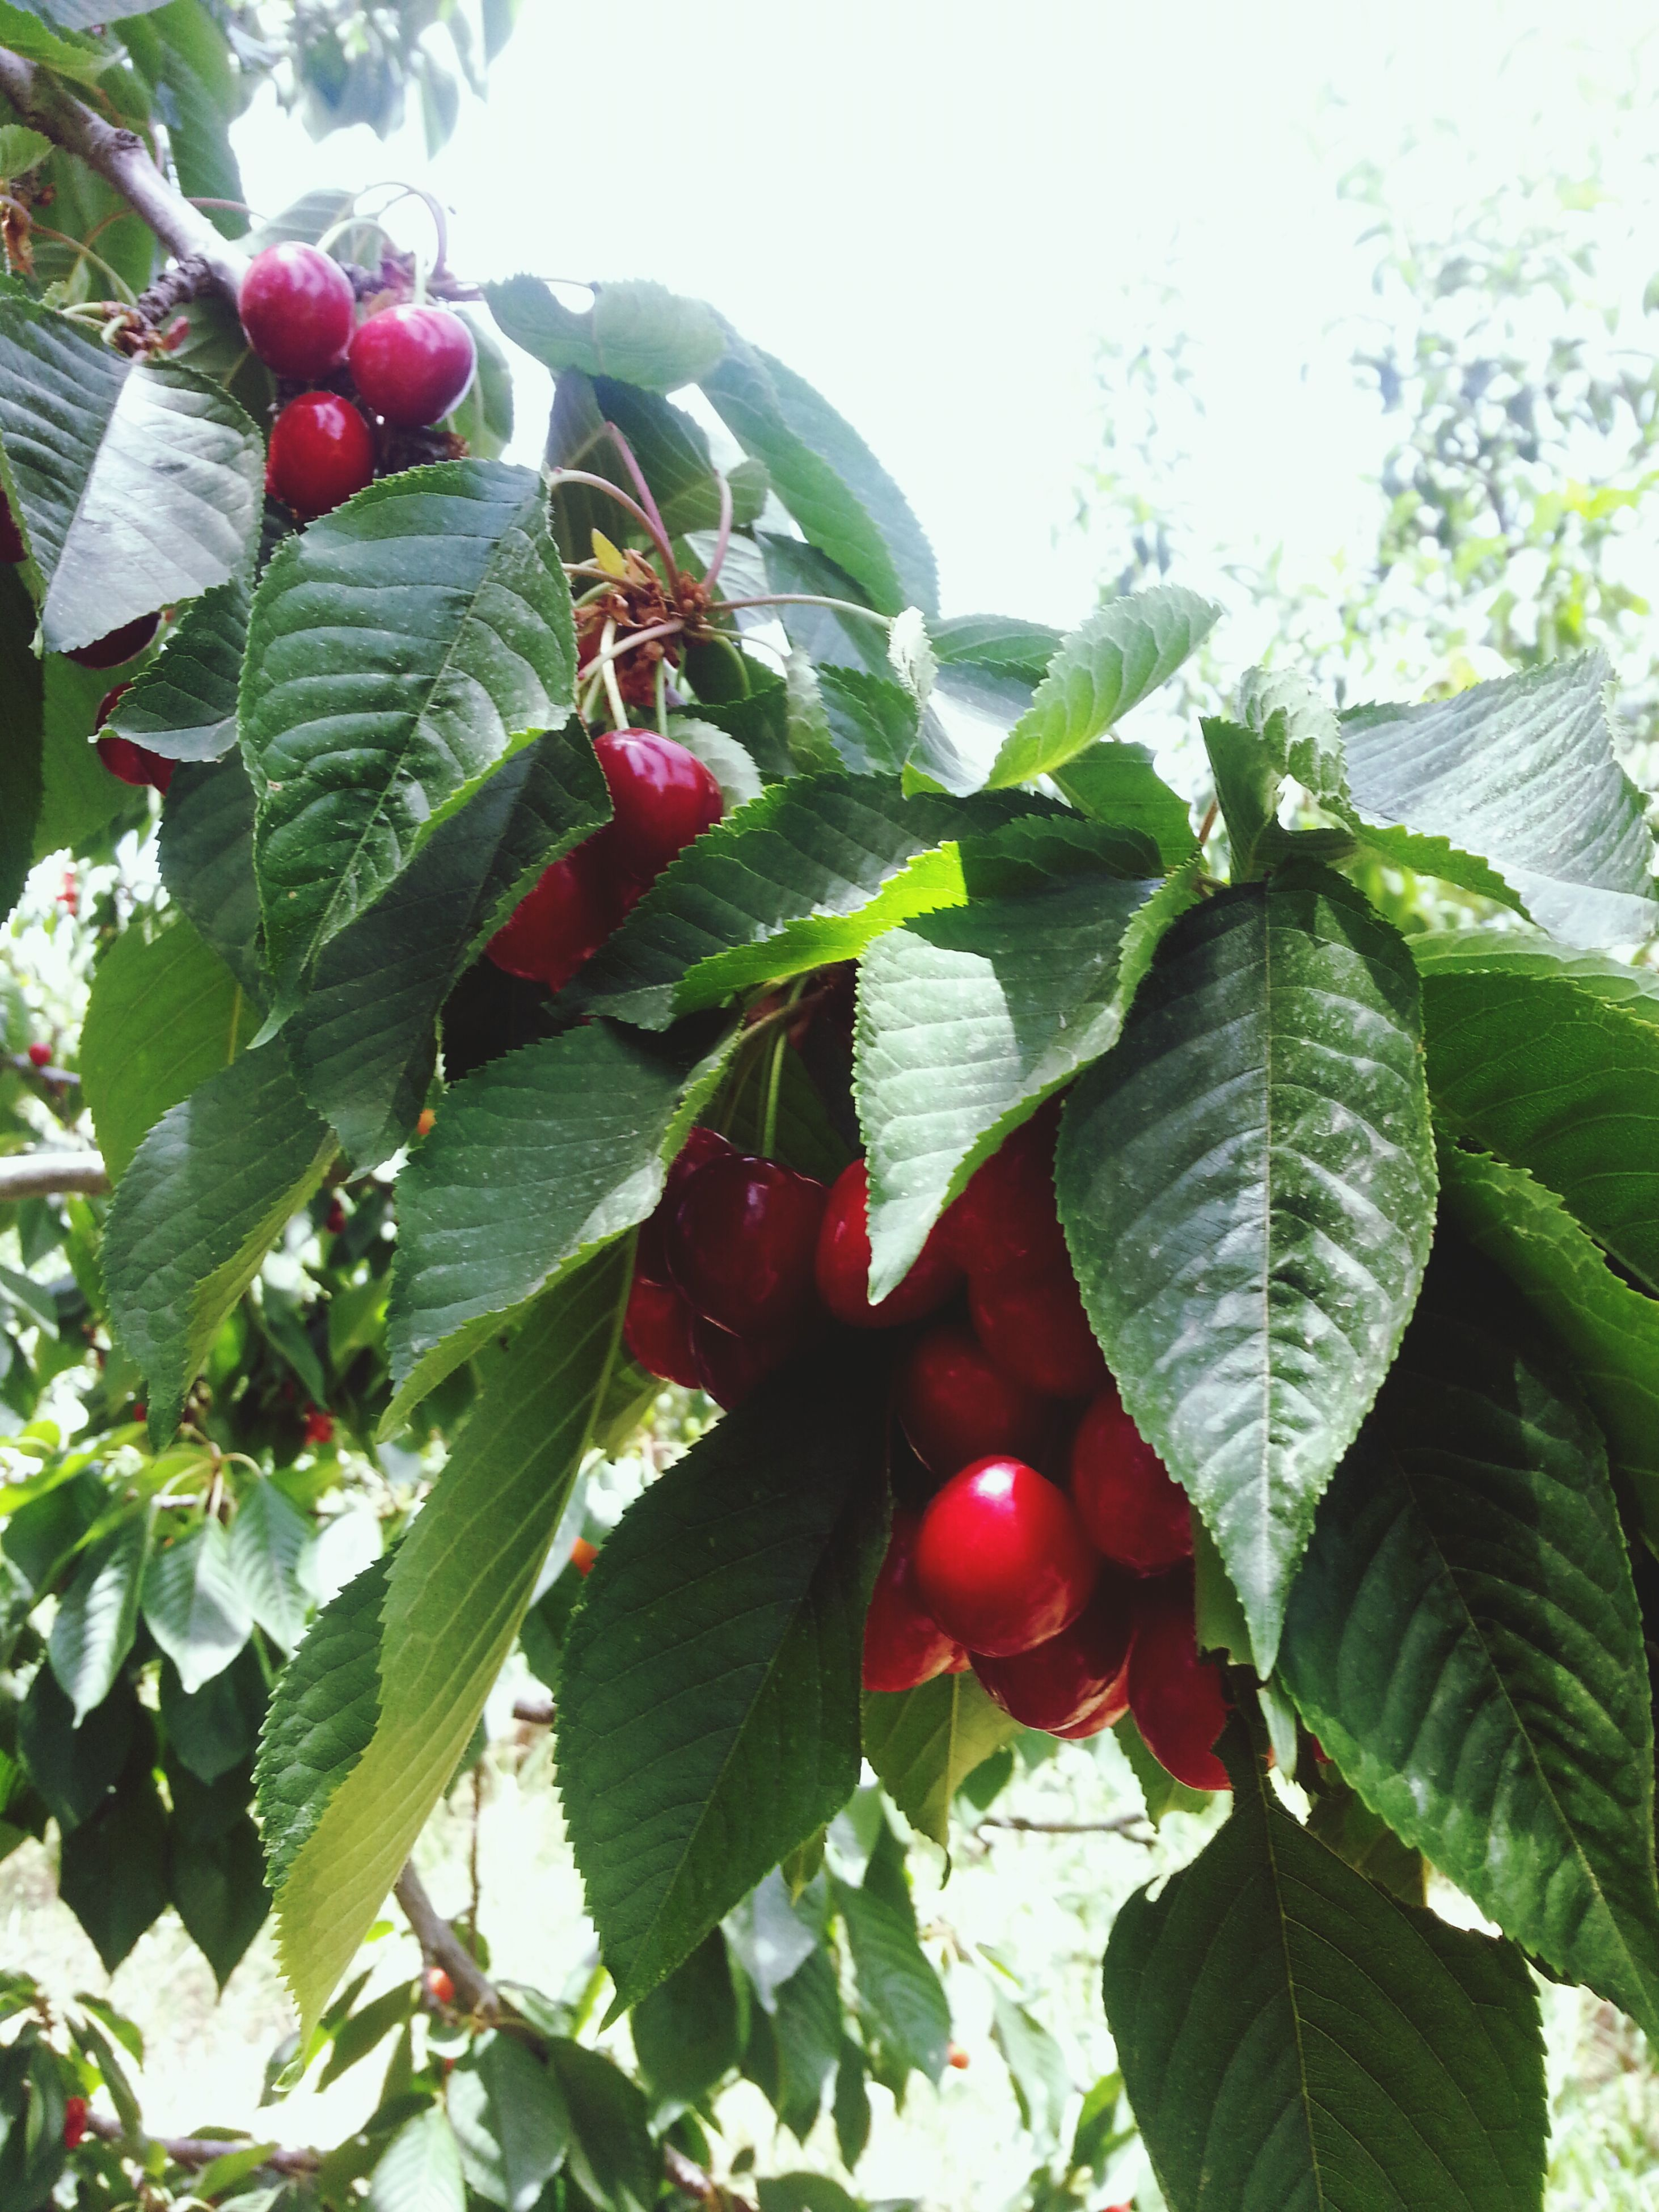 leaf, fruit, freshness, growth, red, food and drink, food, healthy eating, tree, plant, green color, close-up, nature, berry fruit, low angle view, hanging, growing, branch, ripe, focus on foreground